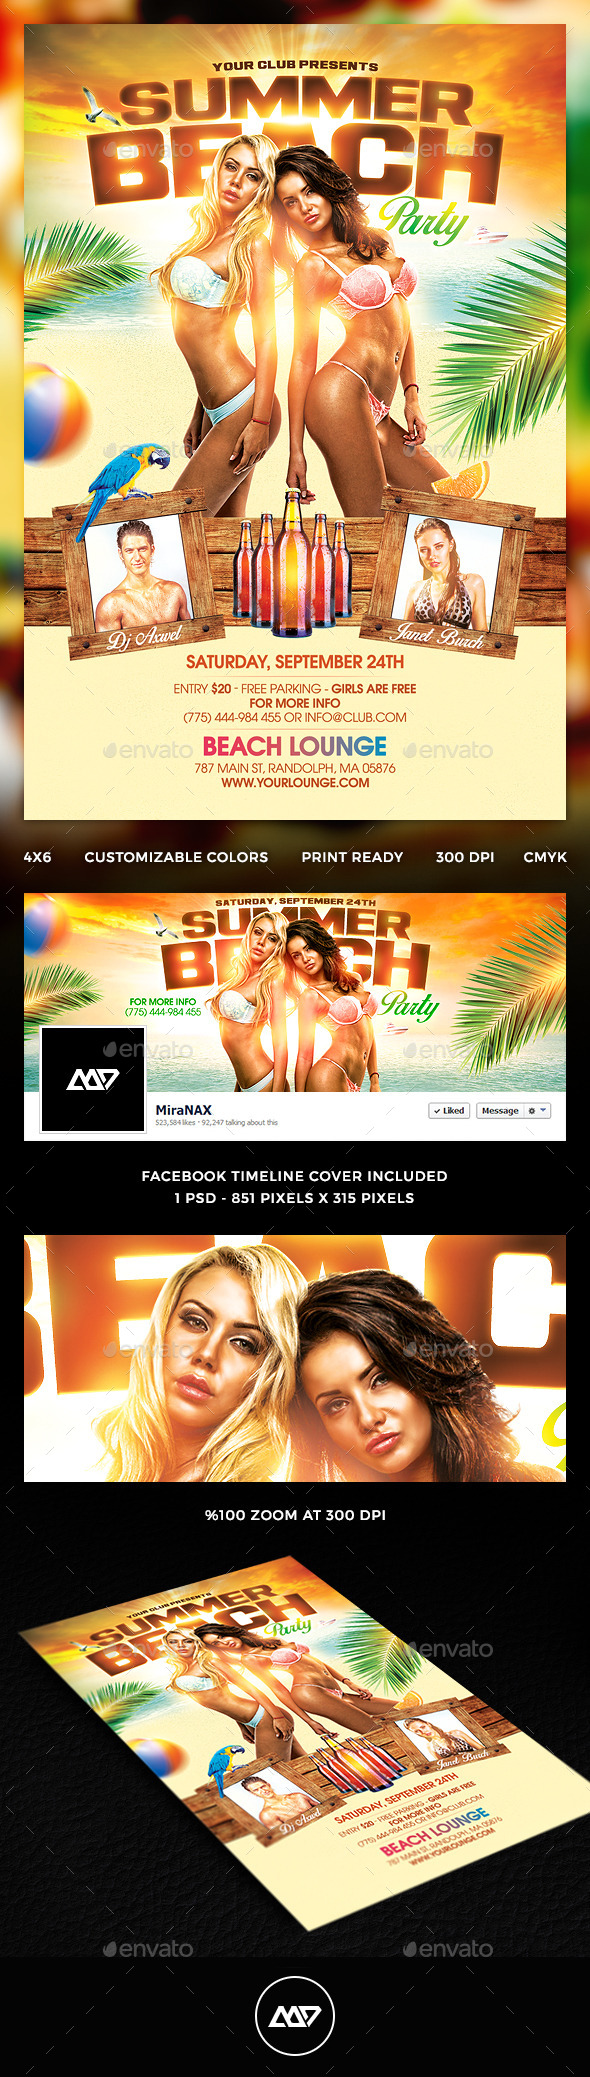 Summer Beach Party Flyer Template  Fb Cover  Summer Beach Party